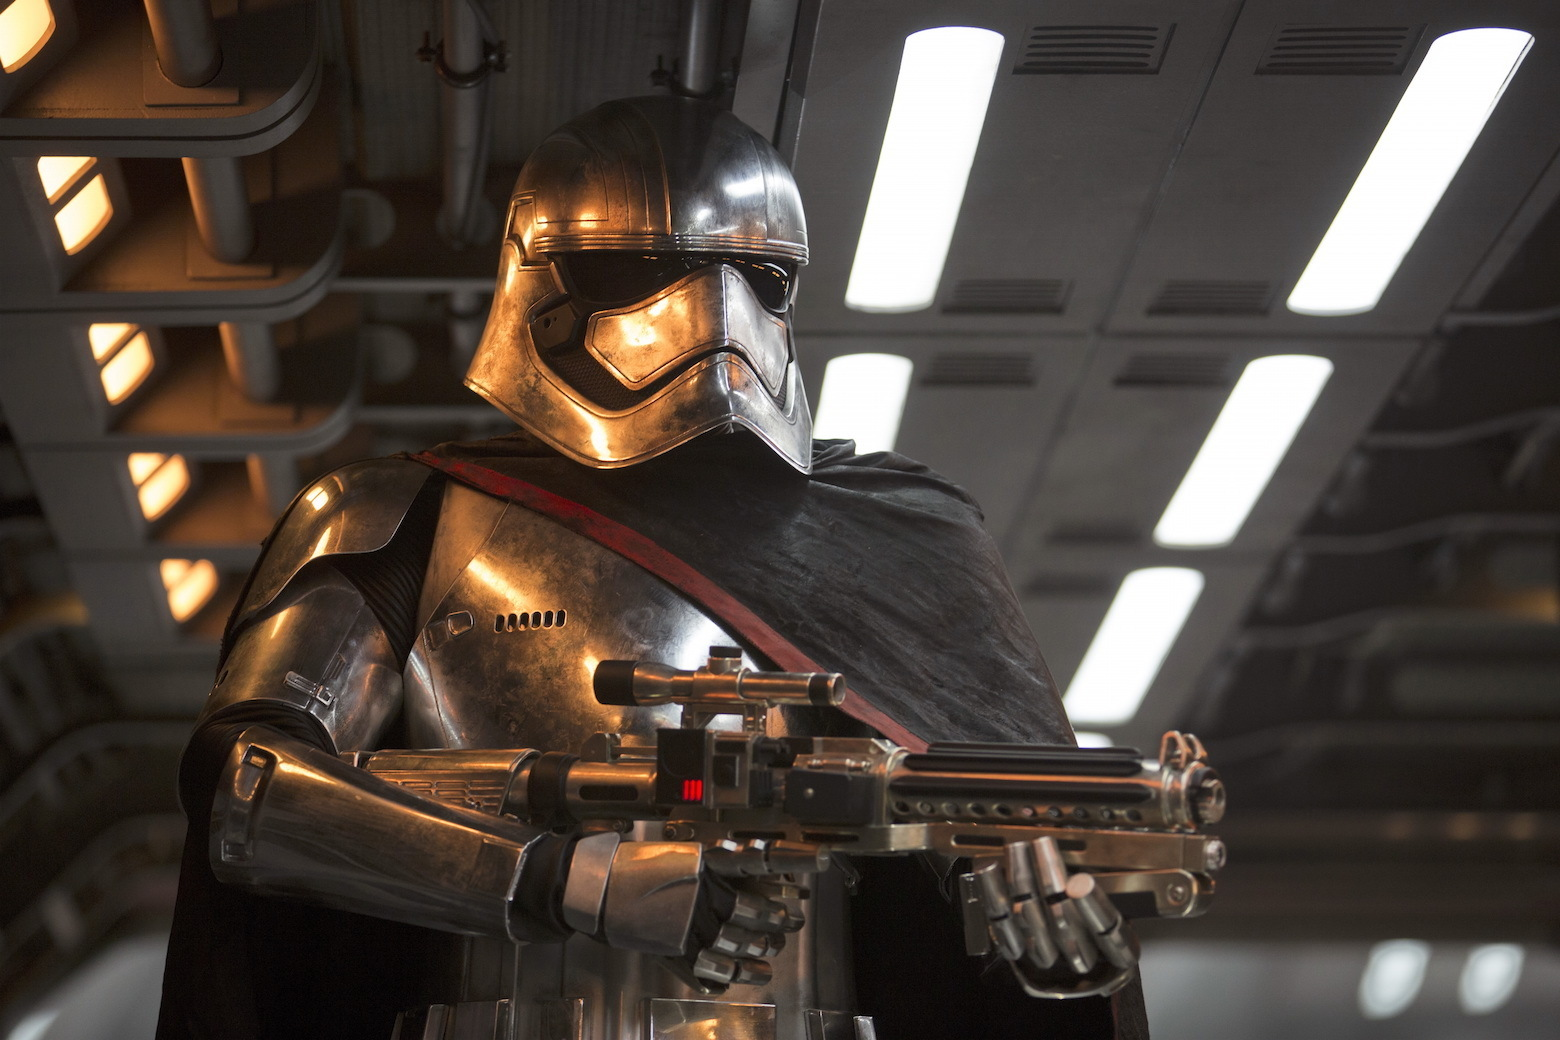 Star Wars spoiler lands man in jail after he threatens a high school shooting